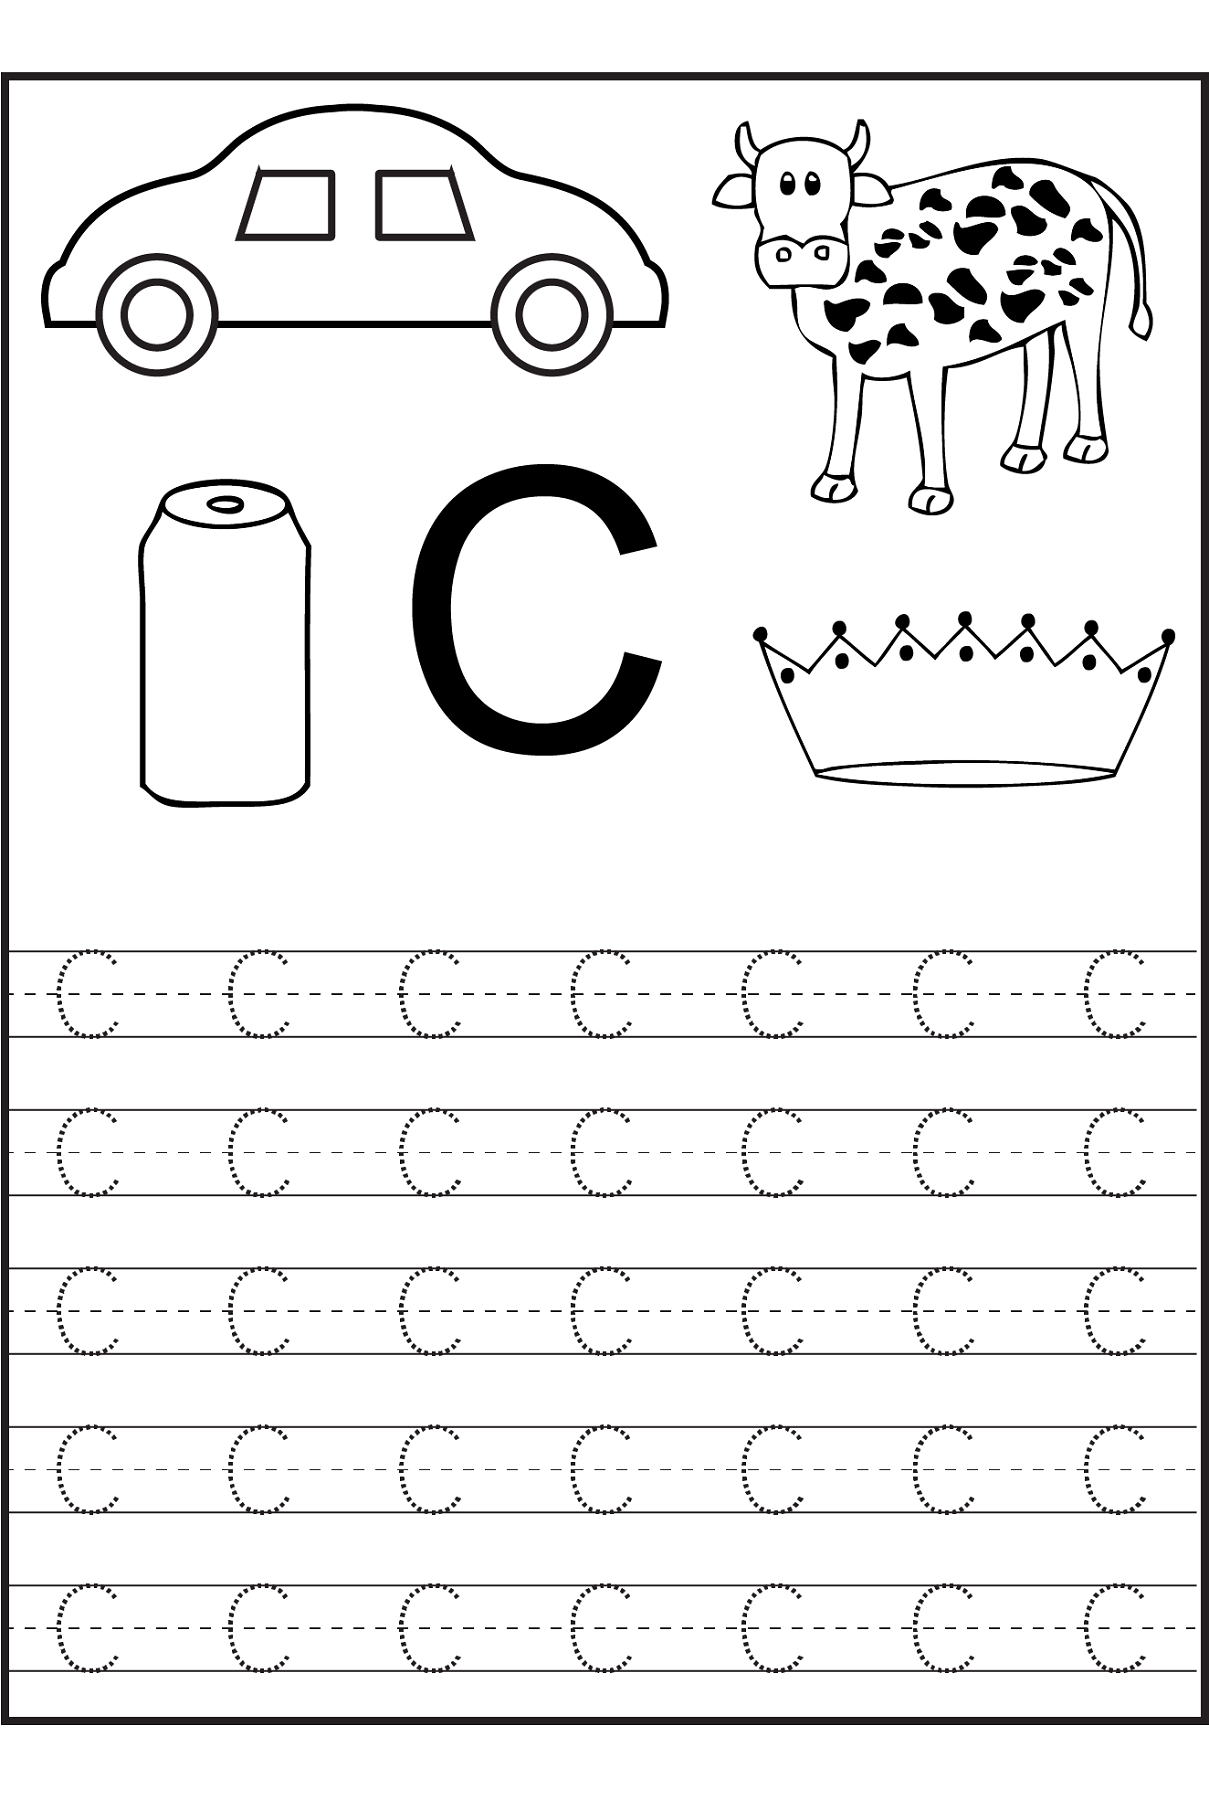 Trace The Letter C Worksheets | Learning Worksheets, Free with regard to Letter C Worksheets Tracing